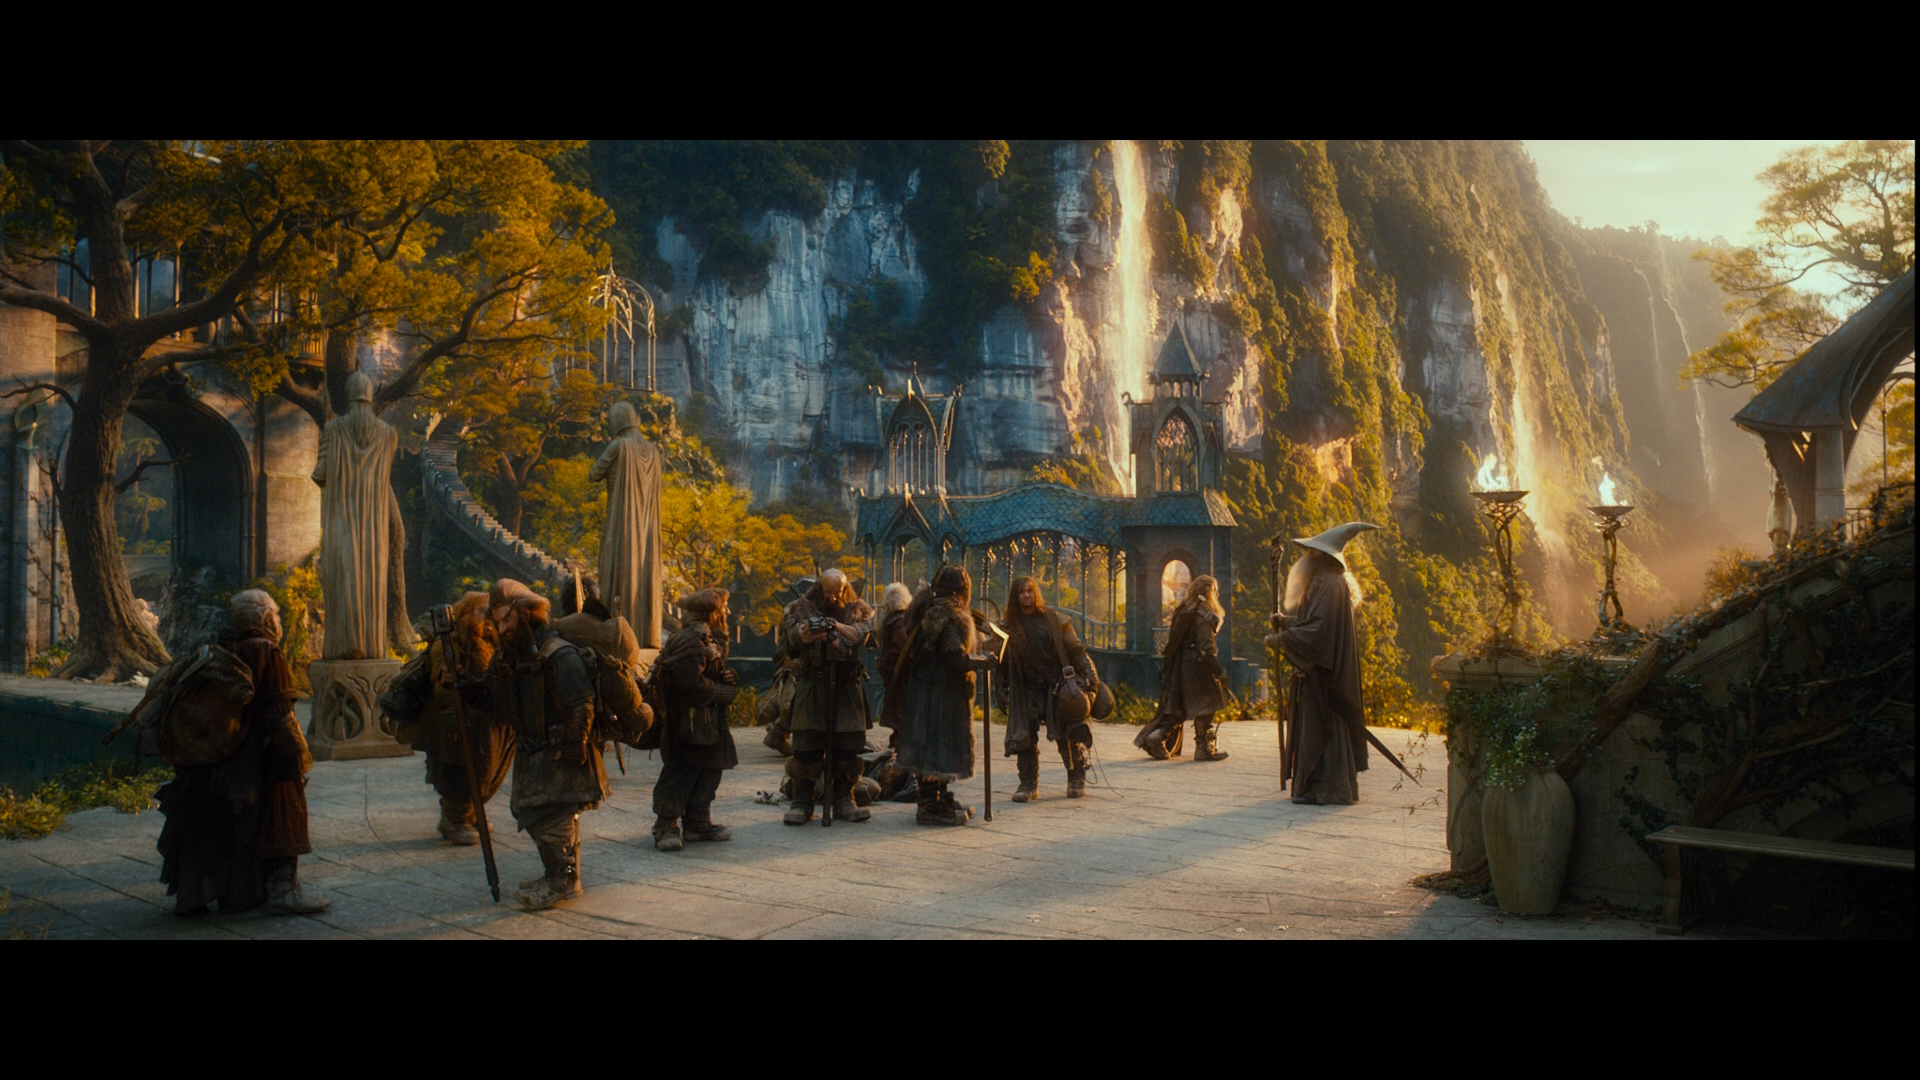 Tauriel is a fictional character from Peter Jacksons feature film adaptation of JRR Tolkiens The Hobbit The character does not appear in the original book but